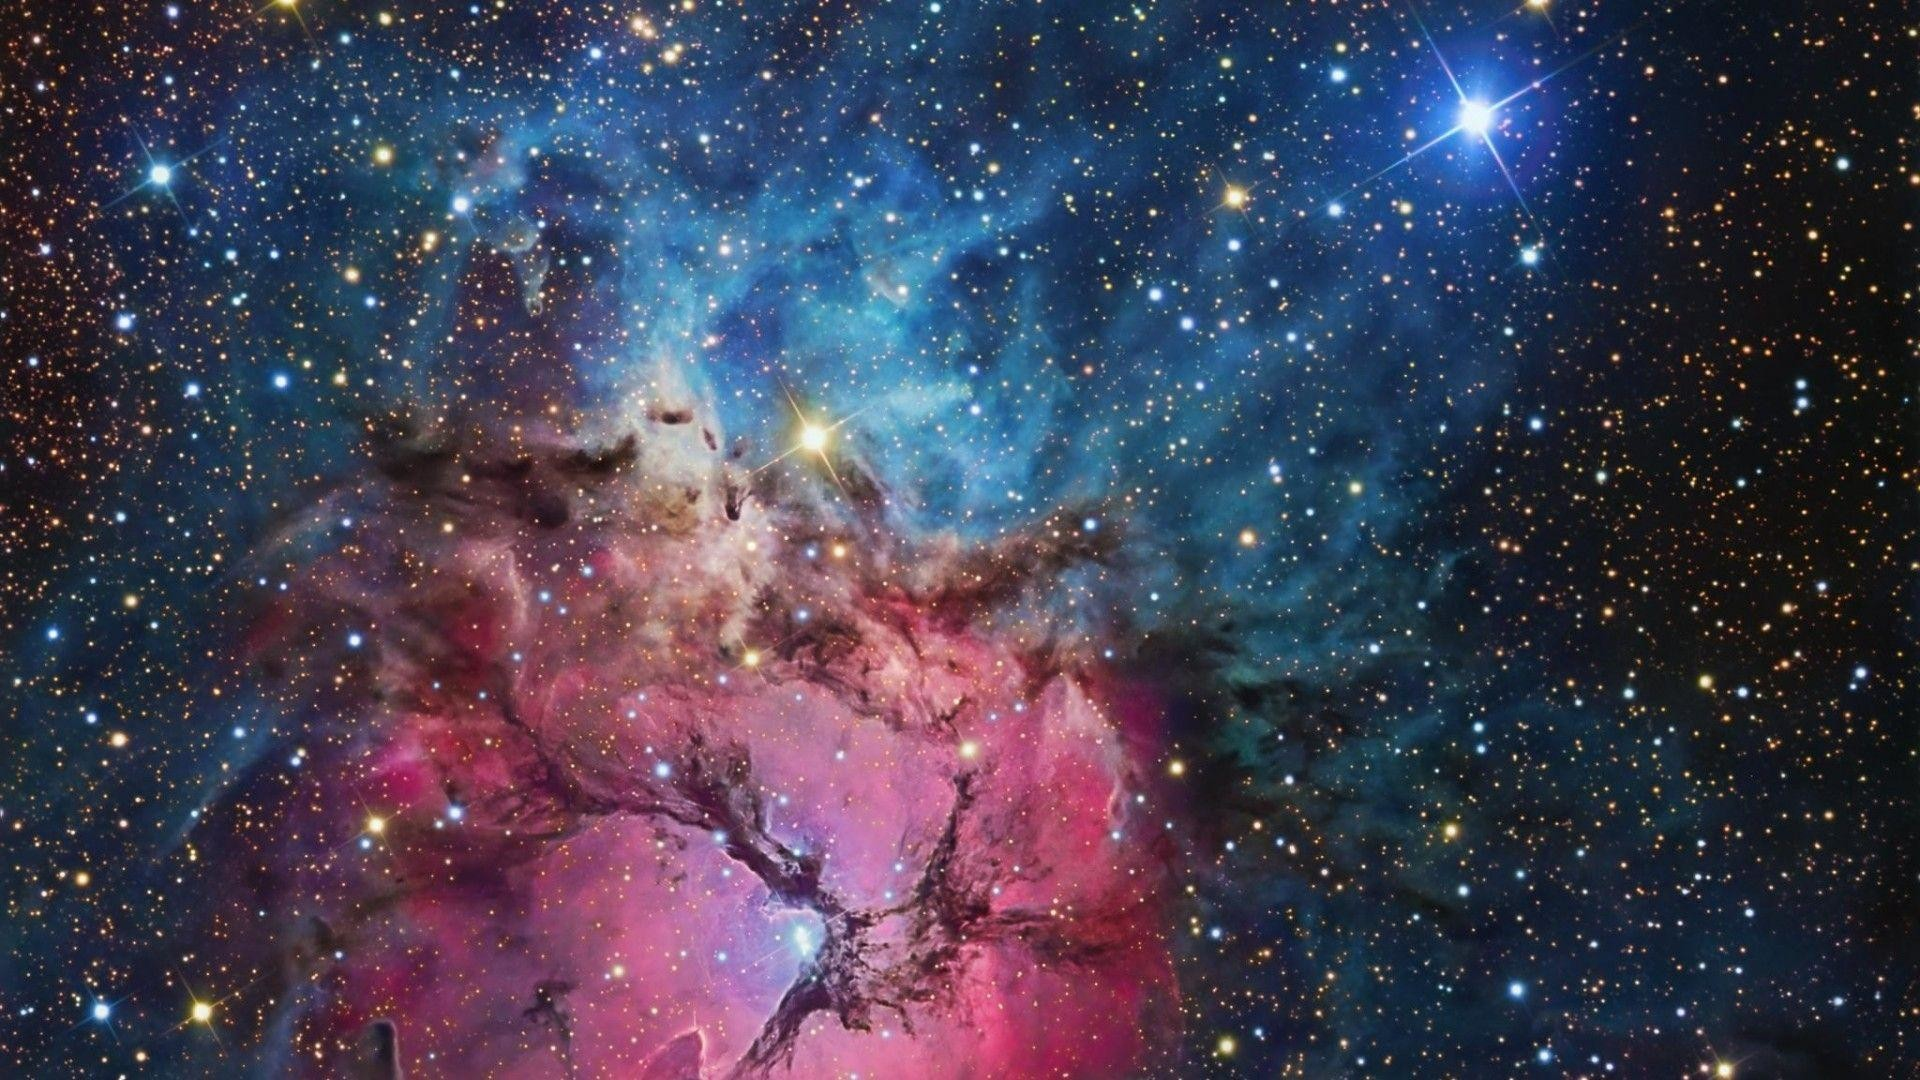 Hubble Space Telescope Wallpapers ·① WallpaperTag